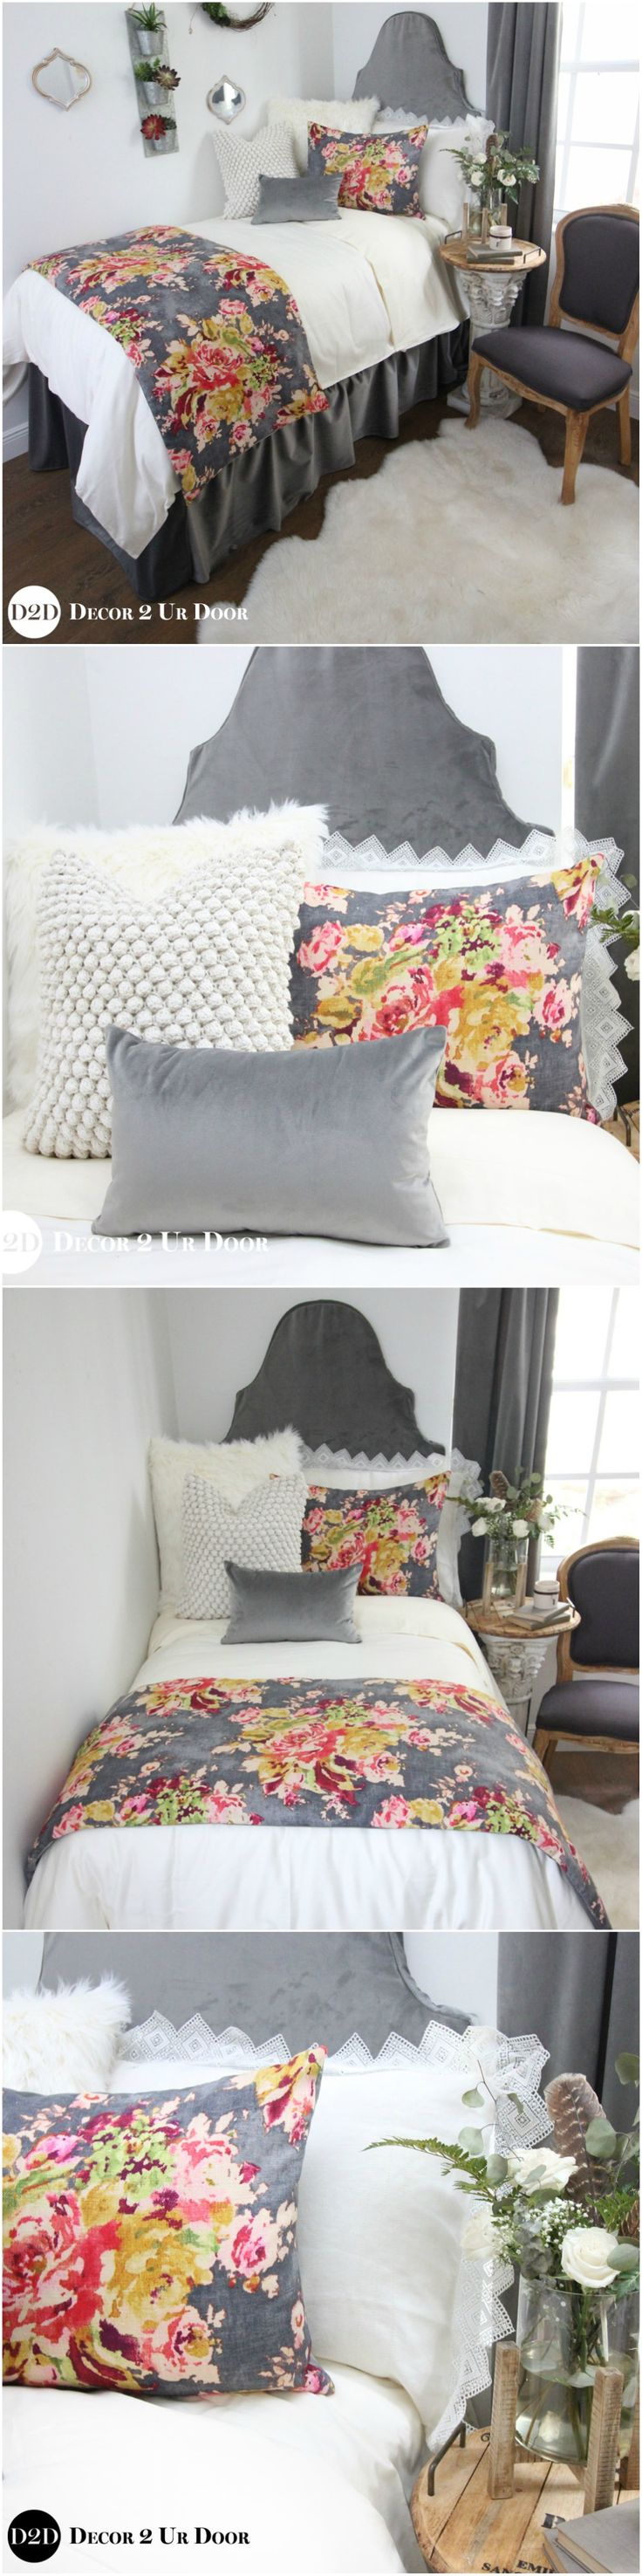 Dorm room bedding set: This multi-color floral print features grey, pink, red, green, and yellow/ivory hues. This set has to be one of our all time dorm room bedding favorites. Trending this year: velvets and florals. Why not combine two into one set? Our brand new grey velvet is soft and cuddly as can be – while adding a sophisticated and stately vibe to your perfect dorm room.